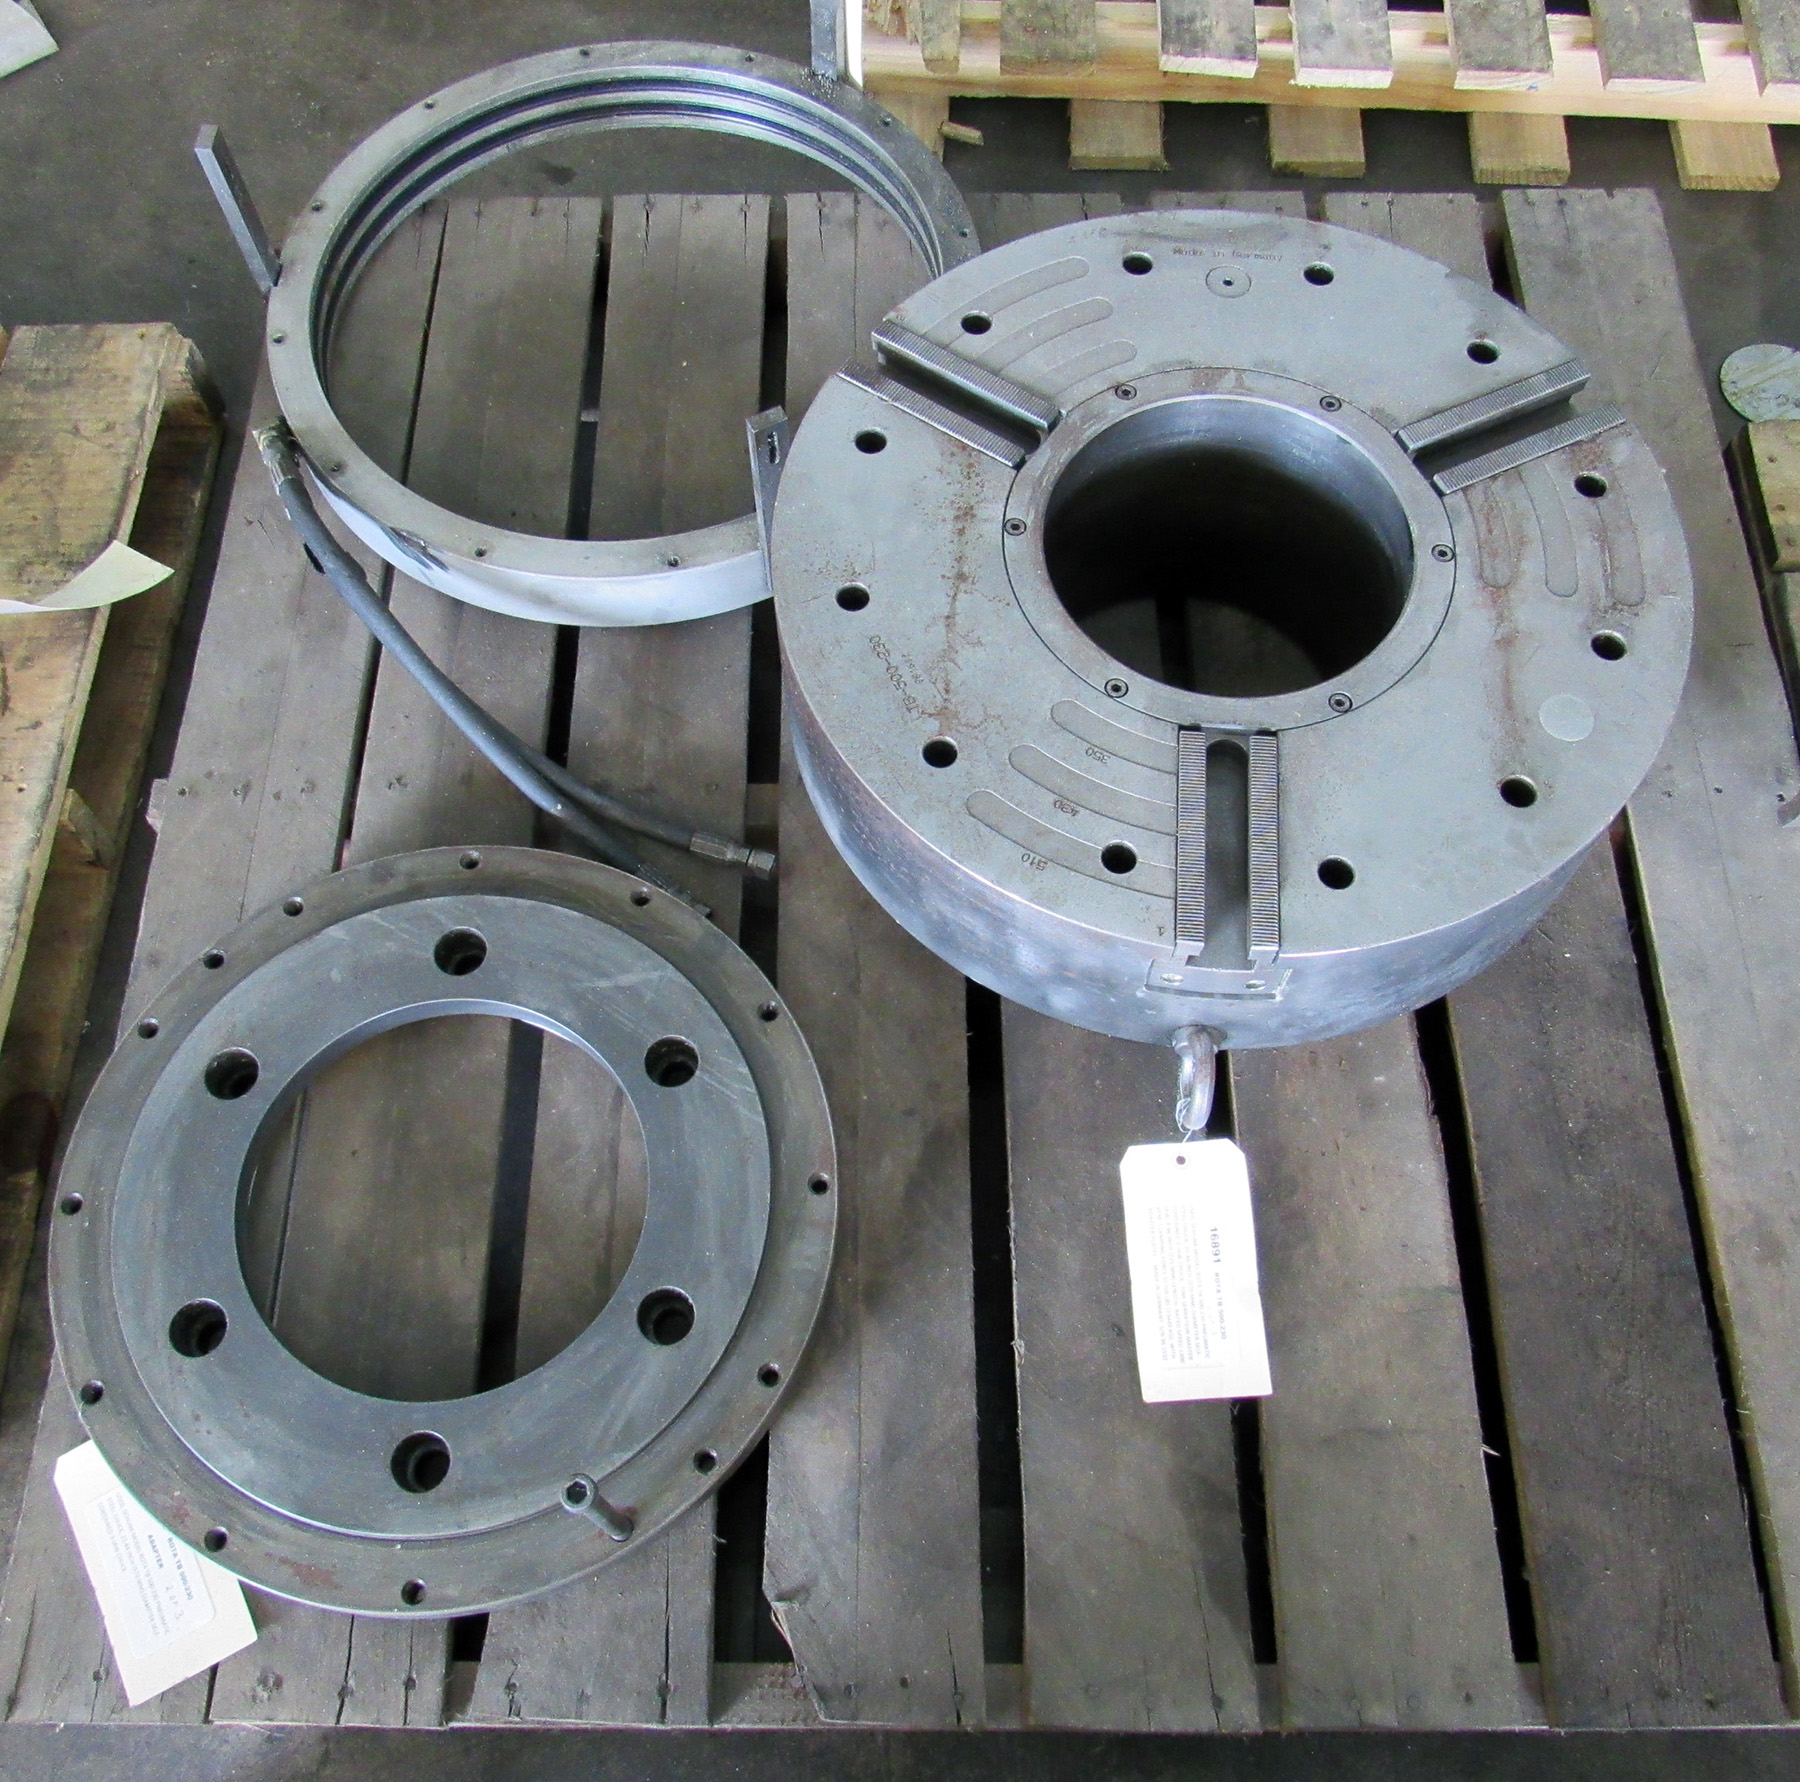 "USED, 22"" SCHUNK MODEL ROTA TB 500-230 PNEUMATIC STEEL CHUCK, WITH ADAPTER PLATES"